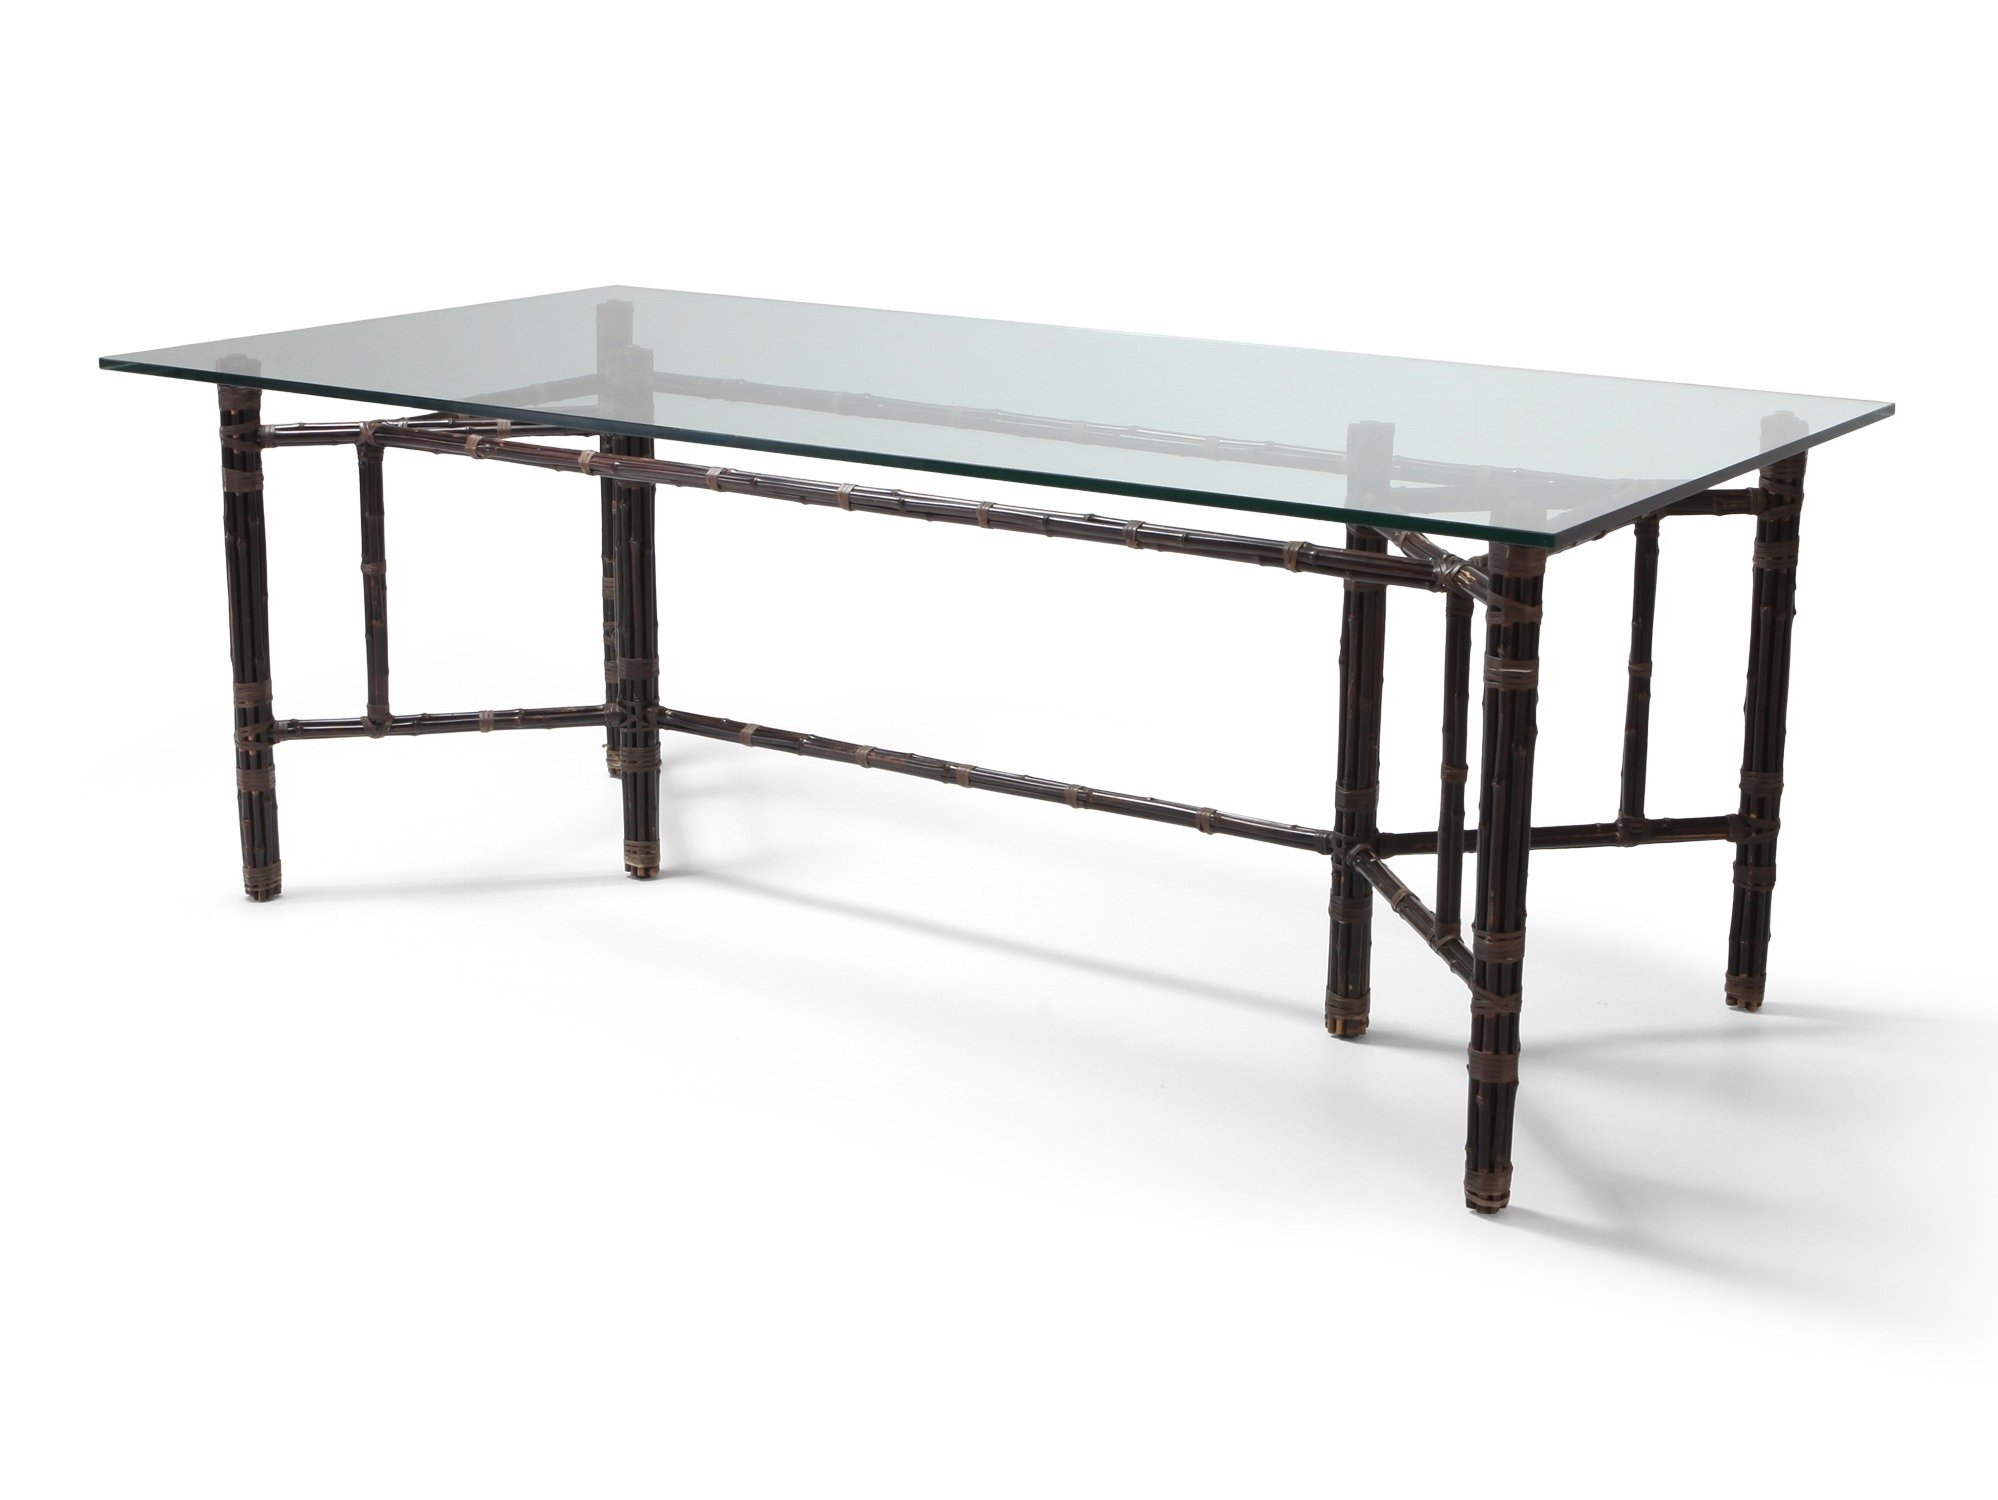 Picture of: Hollywood Regency Bamboo Dining Table With Glass Top 1970s 102614